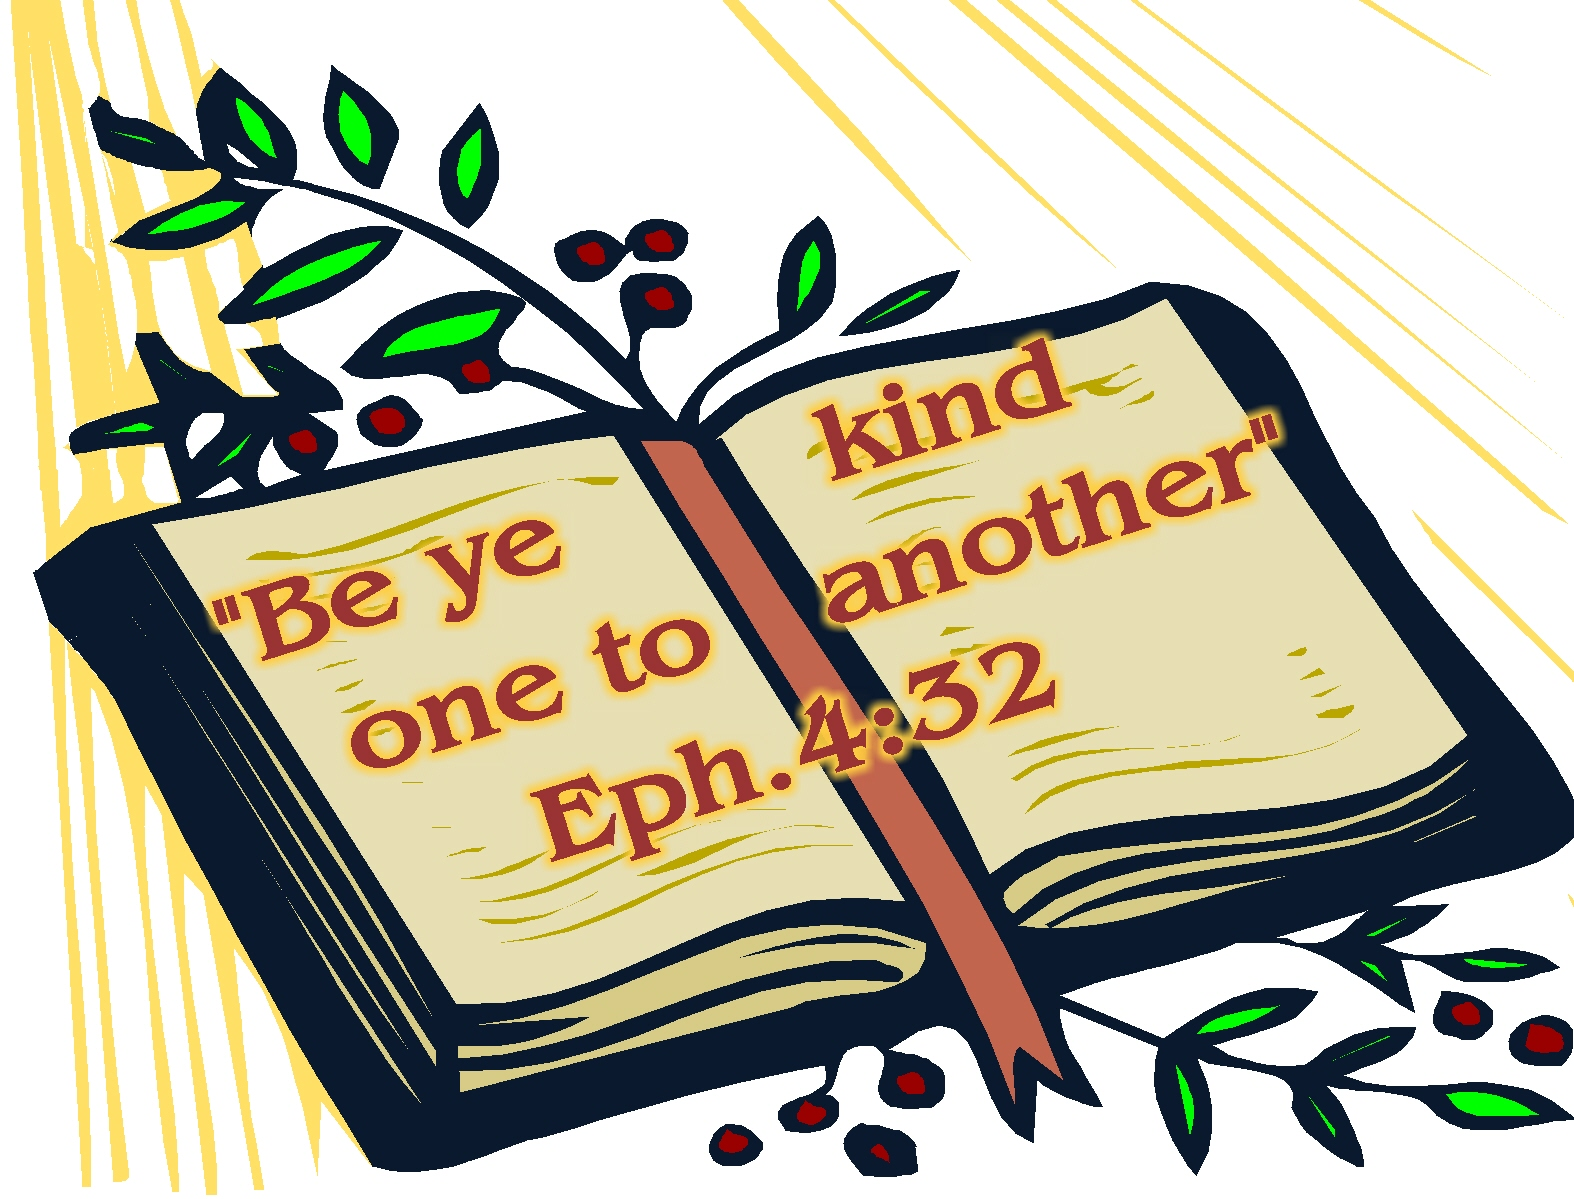 christian images in my treasure box be ye kind one to another rh singanewsongpoetry blogspot com